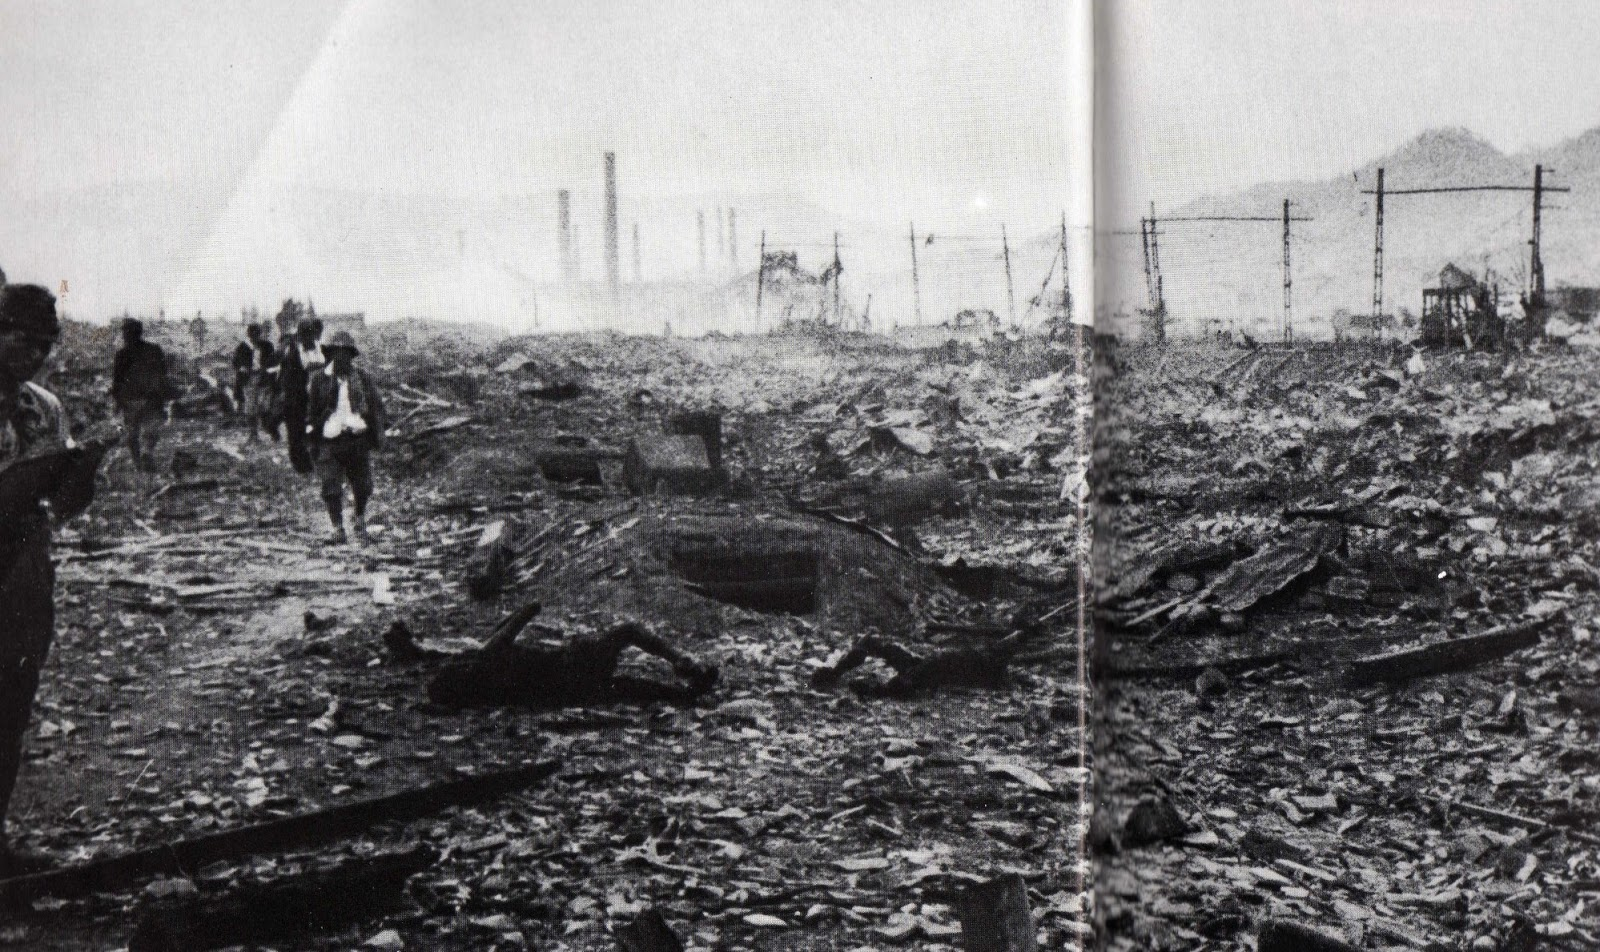 atomic bomb hiroshima nagasaki essay Atomic bombing in hiroshima and nagasaki an atomic bombing in hiroshima and nagasaki is a historical event that will forever remain a mystery to the japanese people.